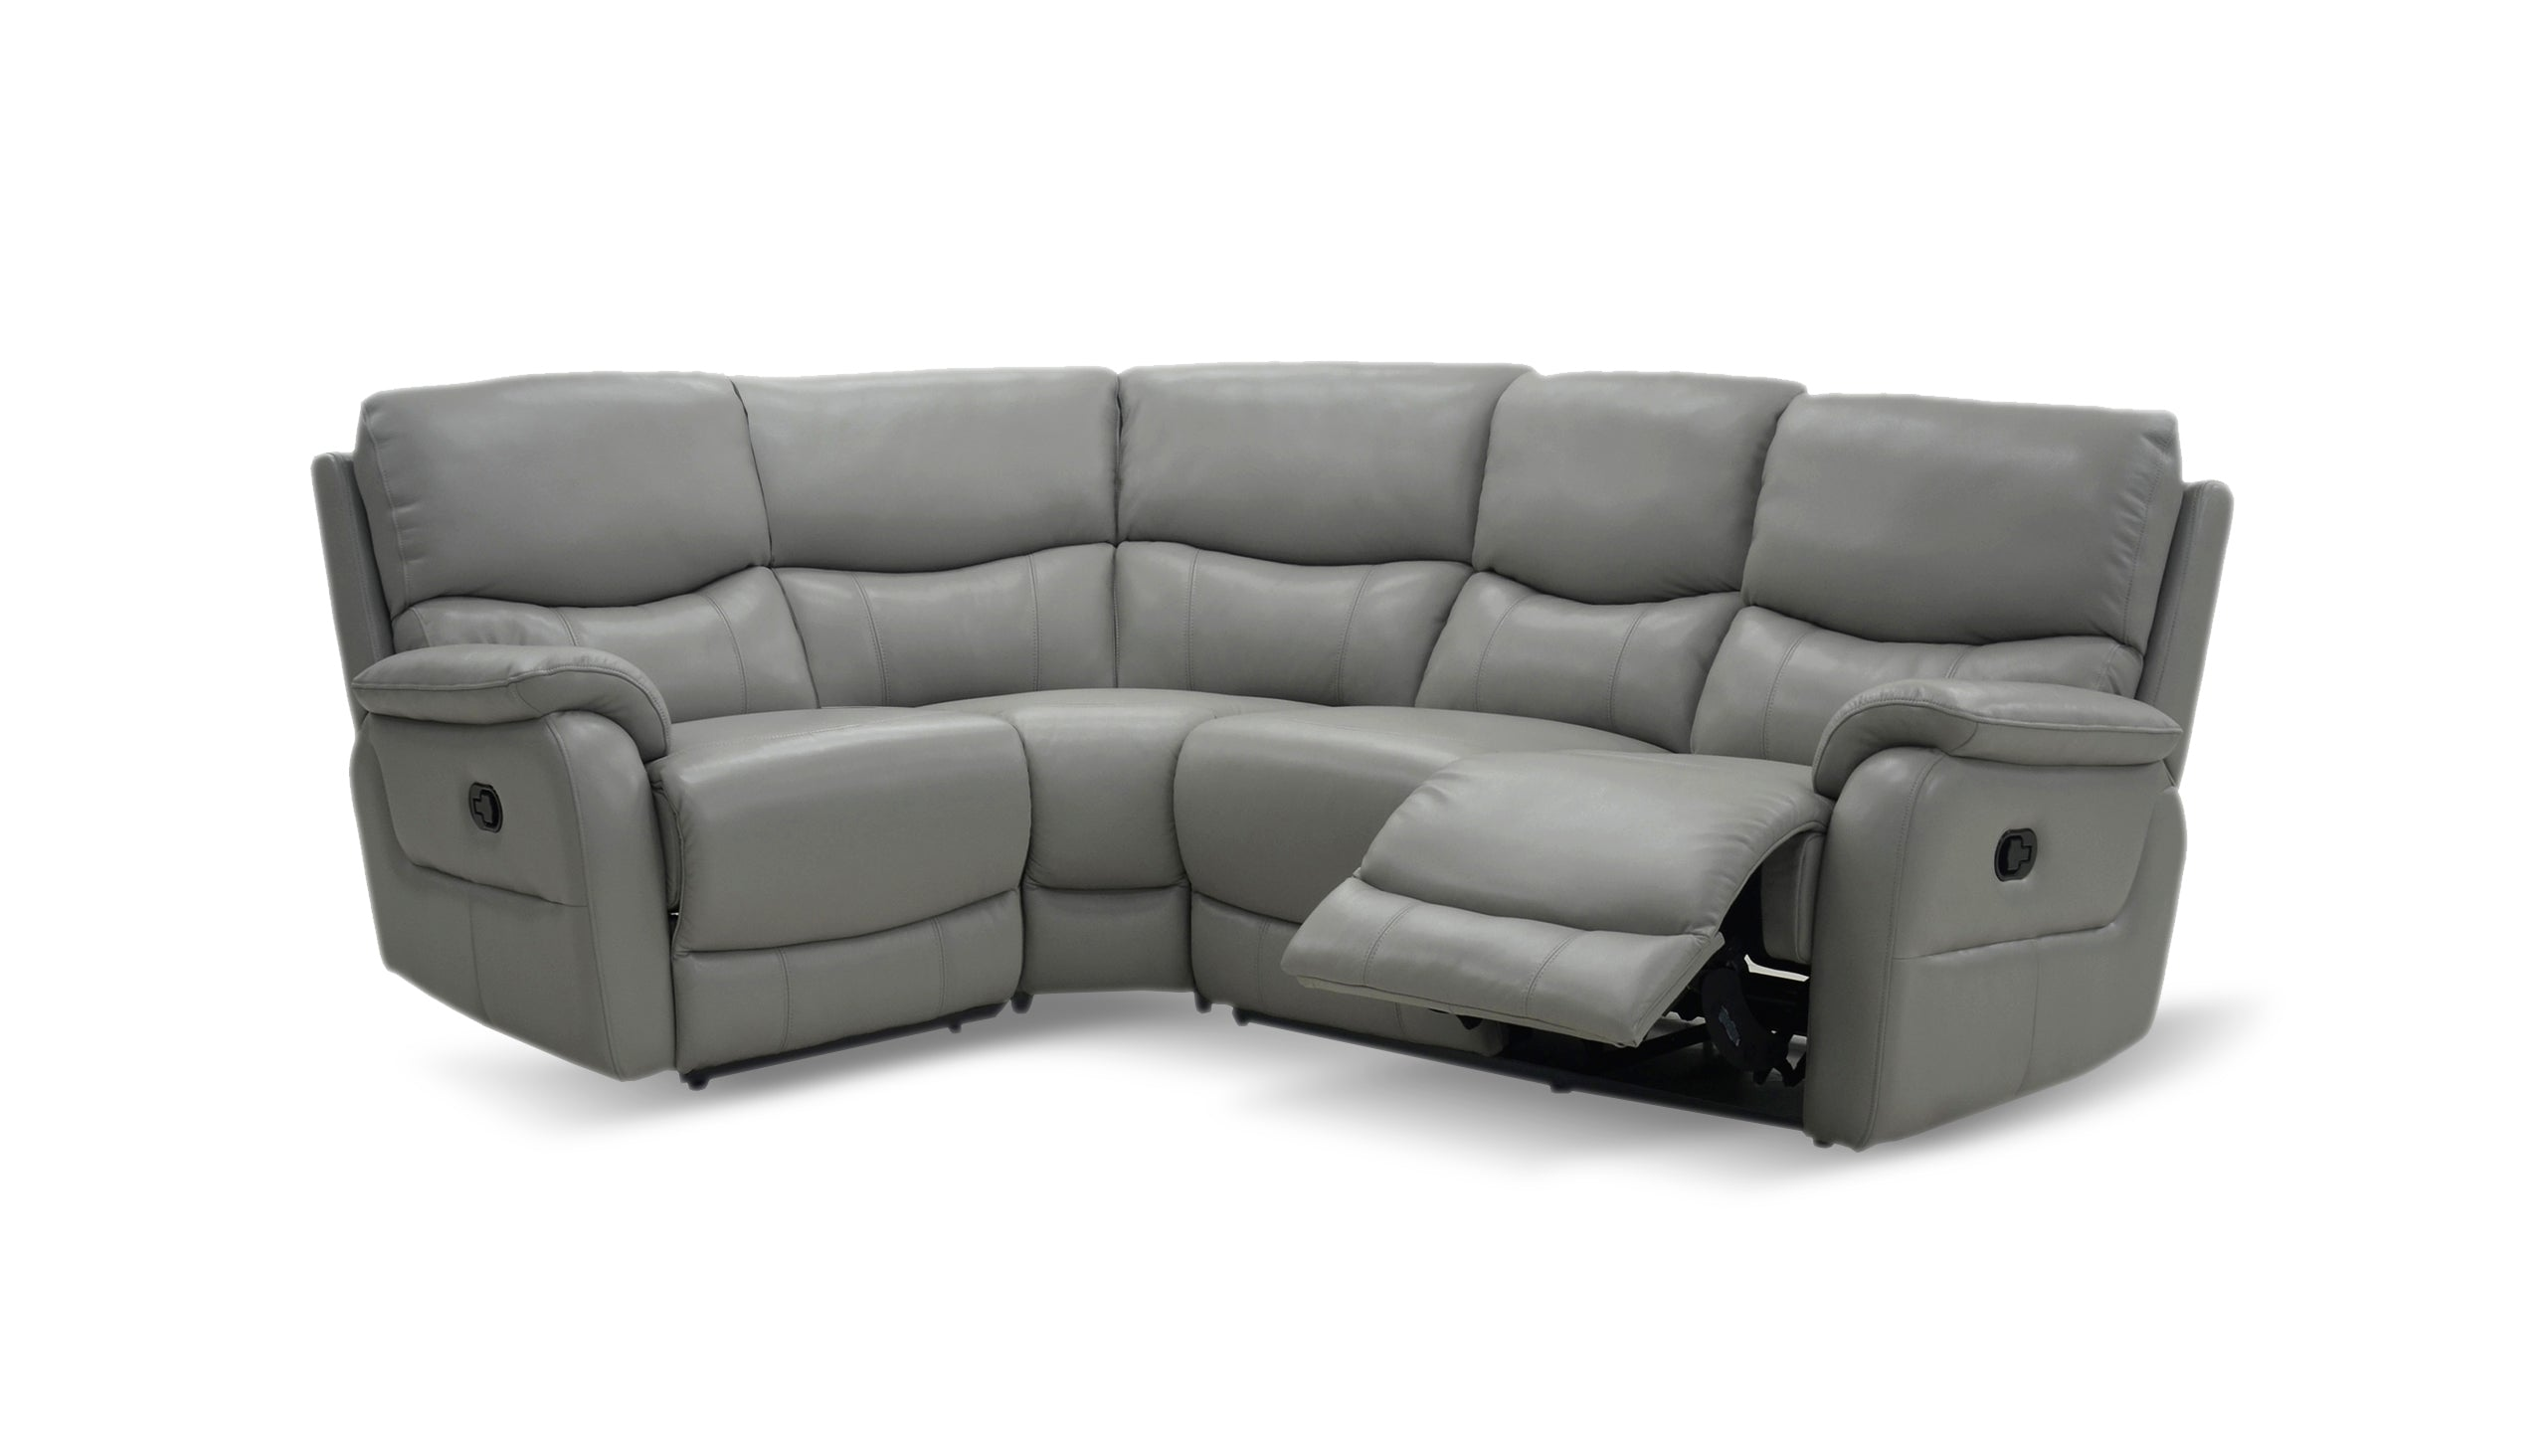 Evelyn Right Hand Facing 2 Corner 1 Manual Recliner Sofa in Leather